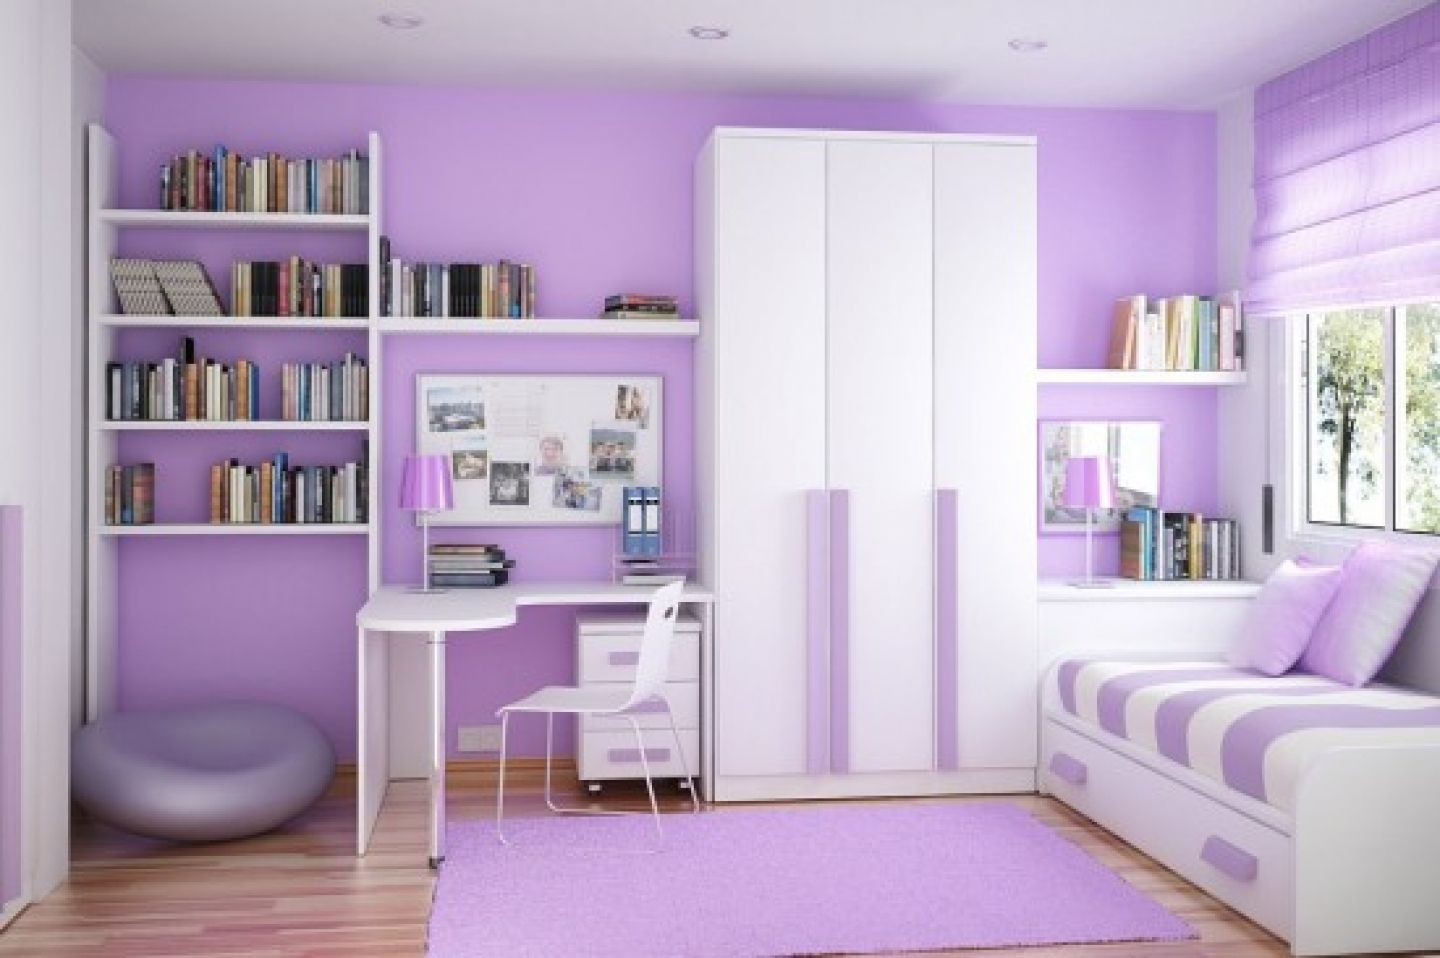 Purple Room Decor Ideas   Interior Design   Why Do You Have To Opt Purple  Color For Your Room? Purple Is A Joyful. So If Your Kids Are A Bit  Miserable, ... Part 2